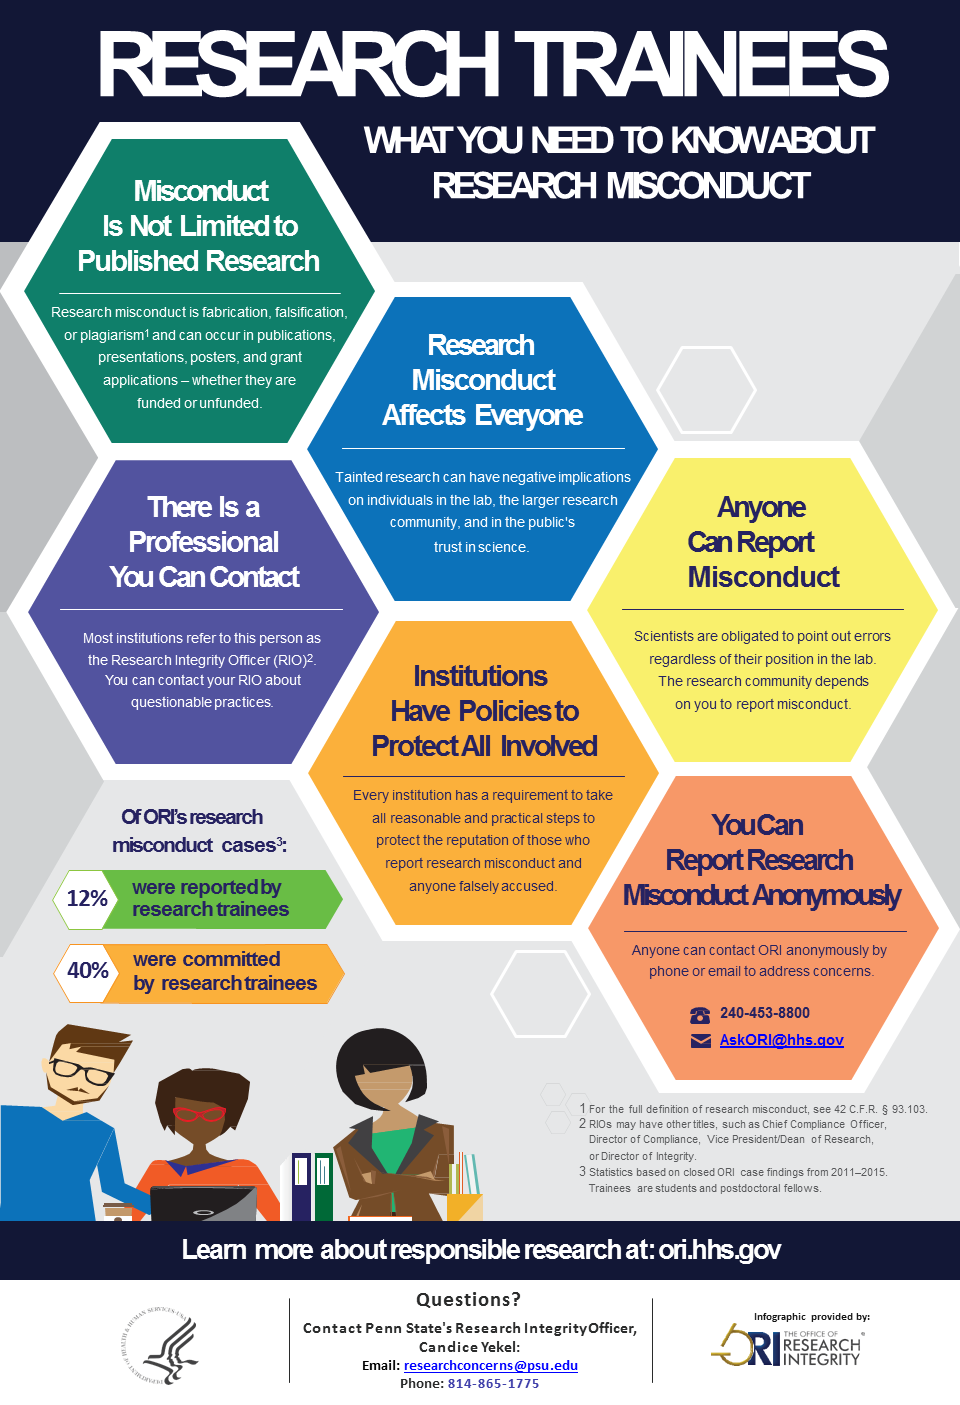 What Research Trainees need to know